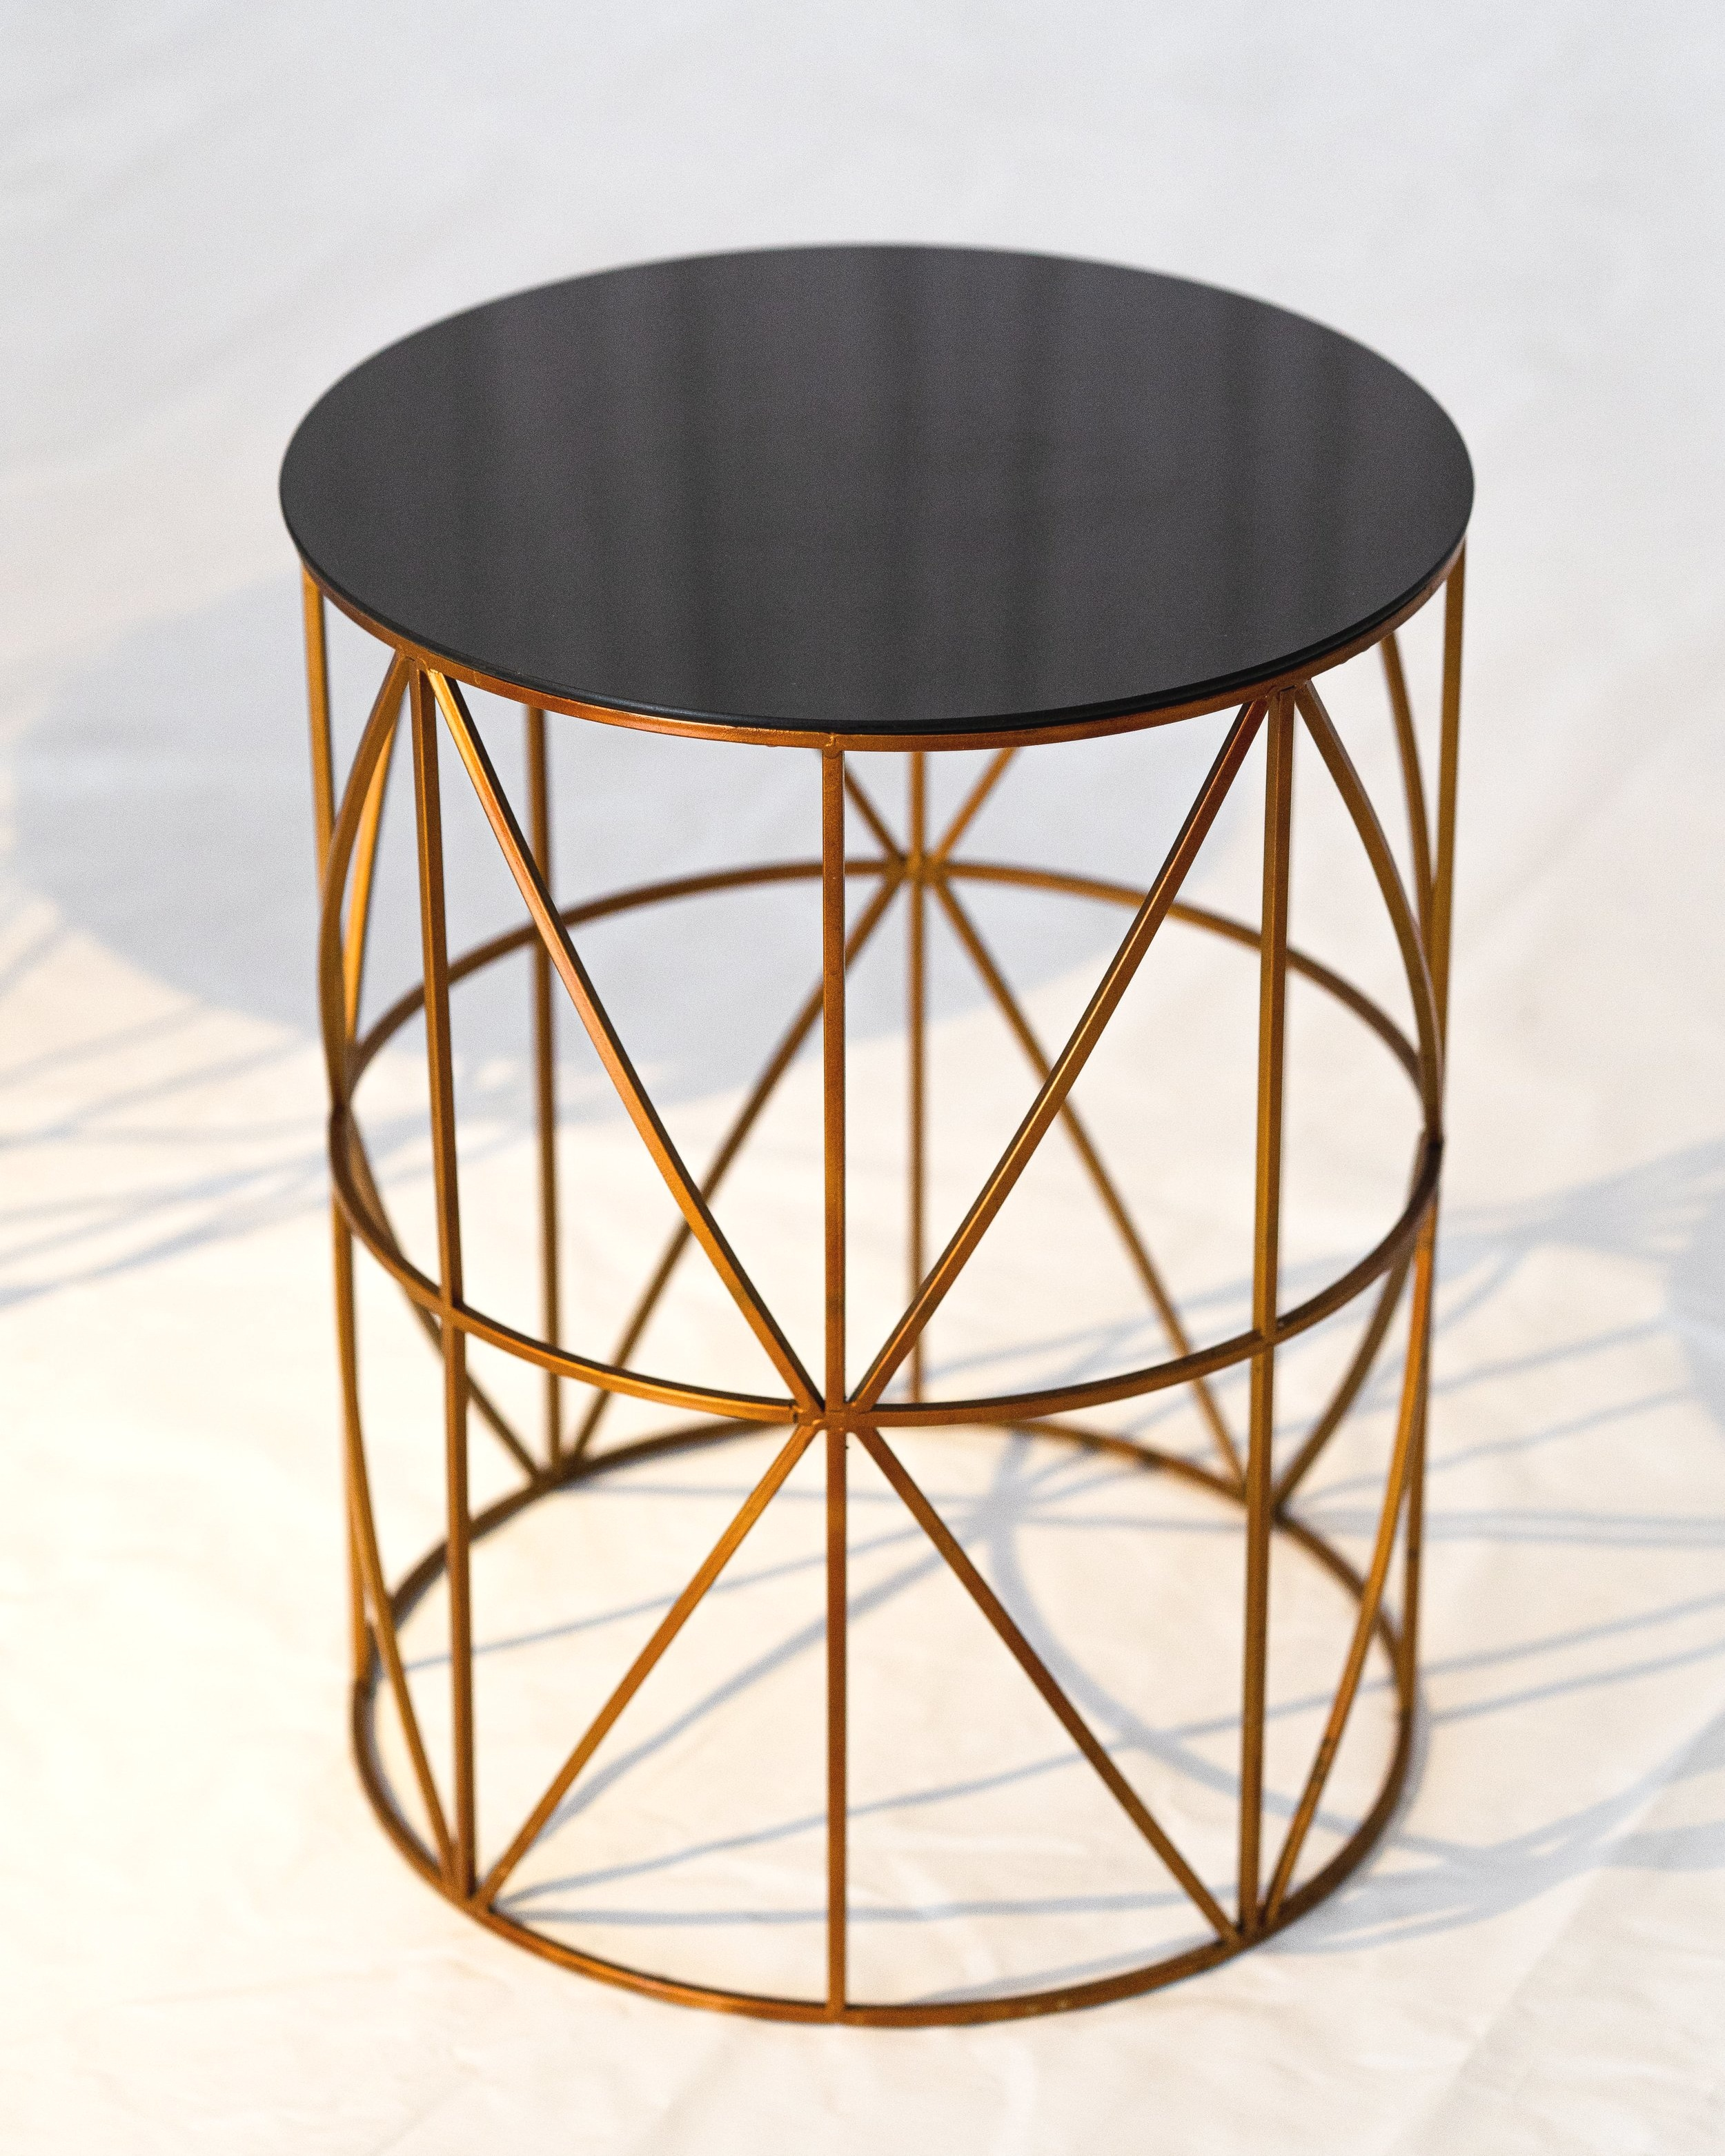 Dudley Table -